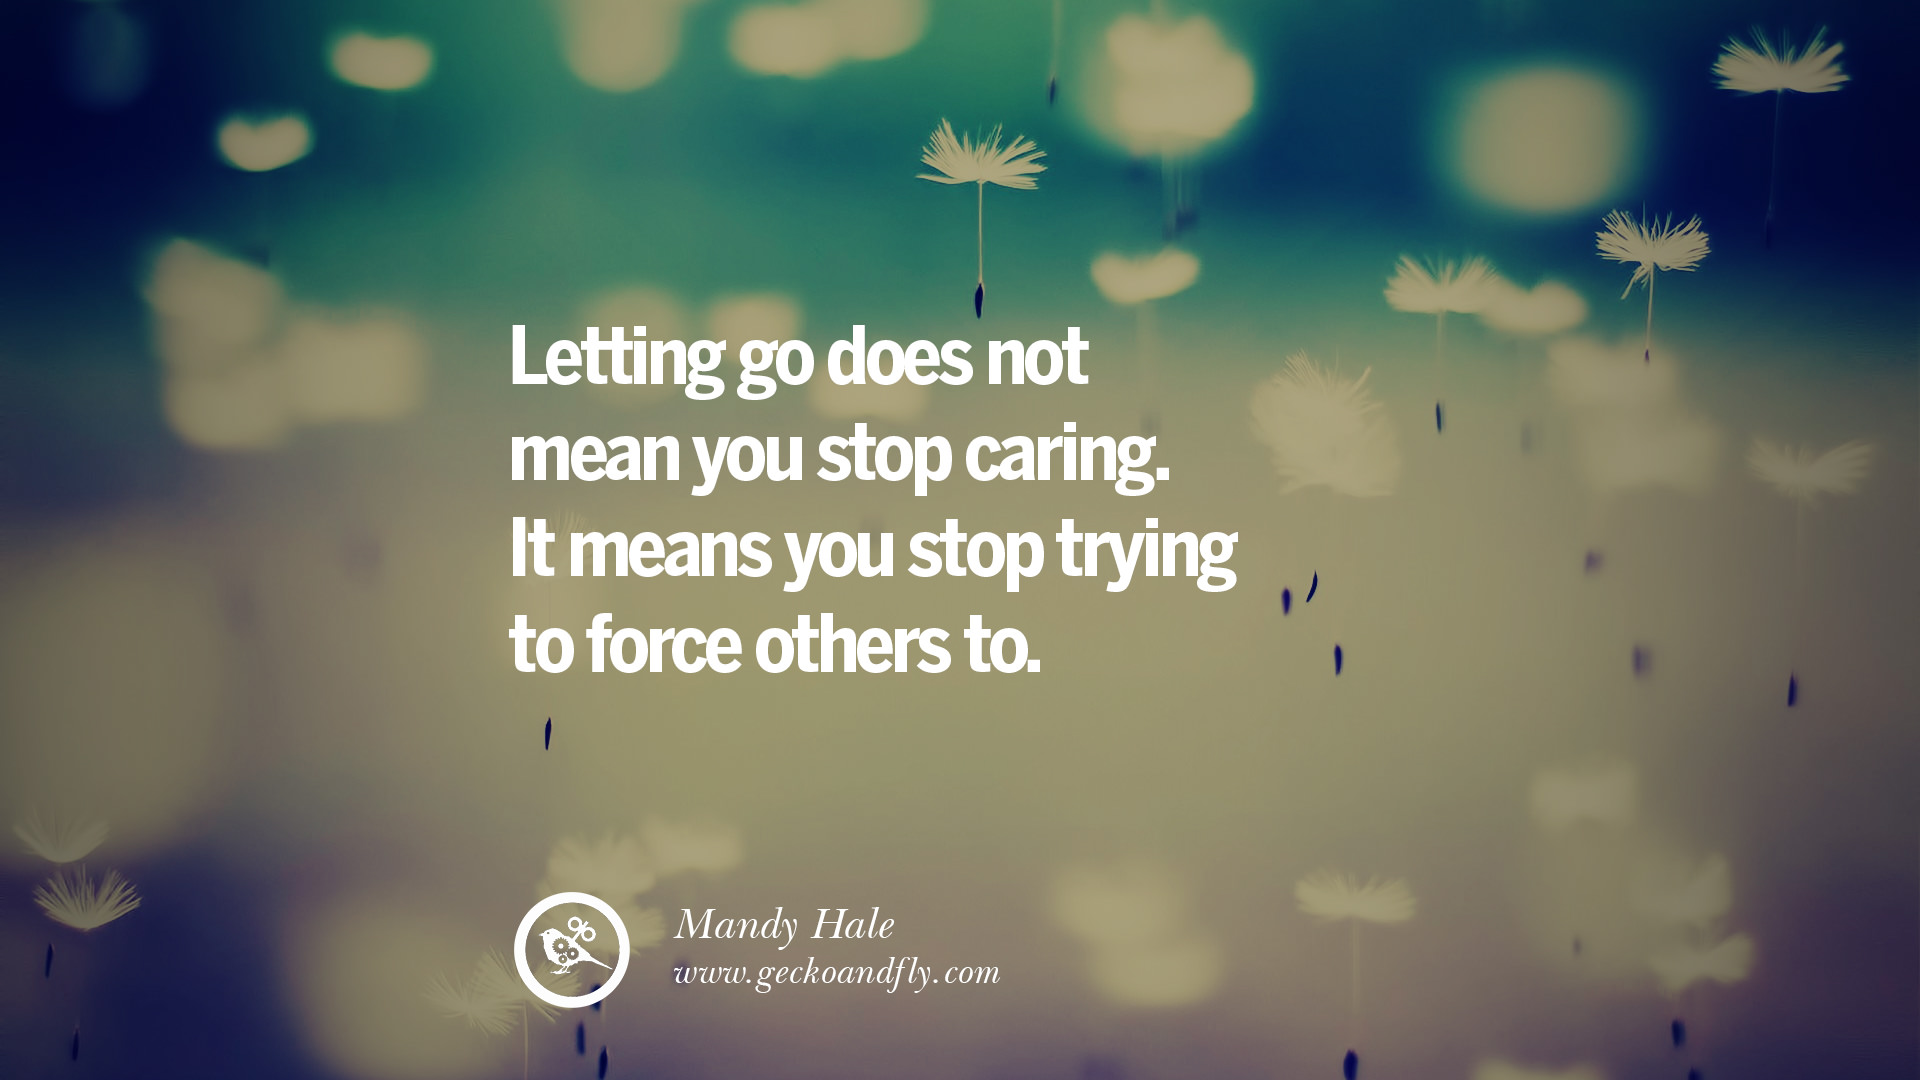 50 Quotes About Moving On And Letting Go Of Relationship And Love [ Part 2 ]